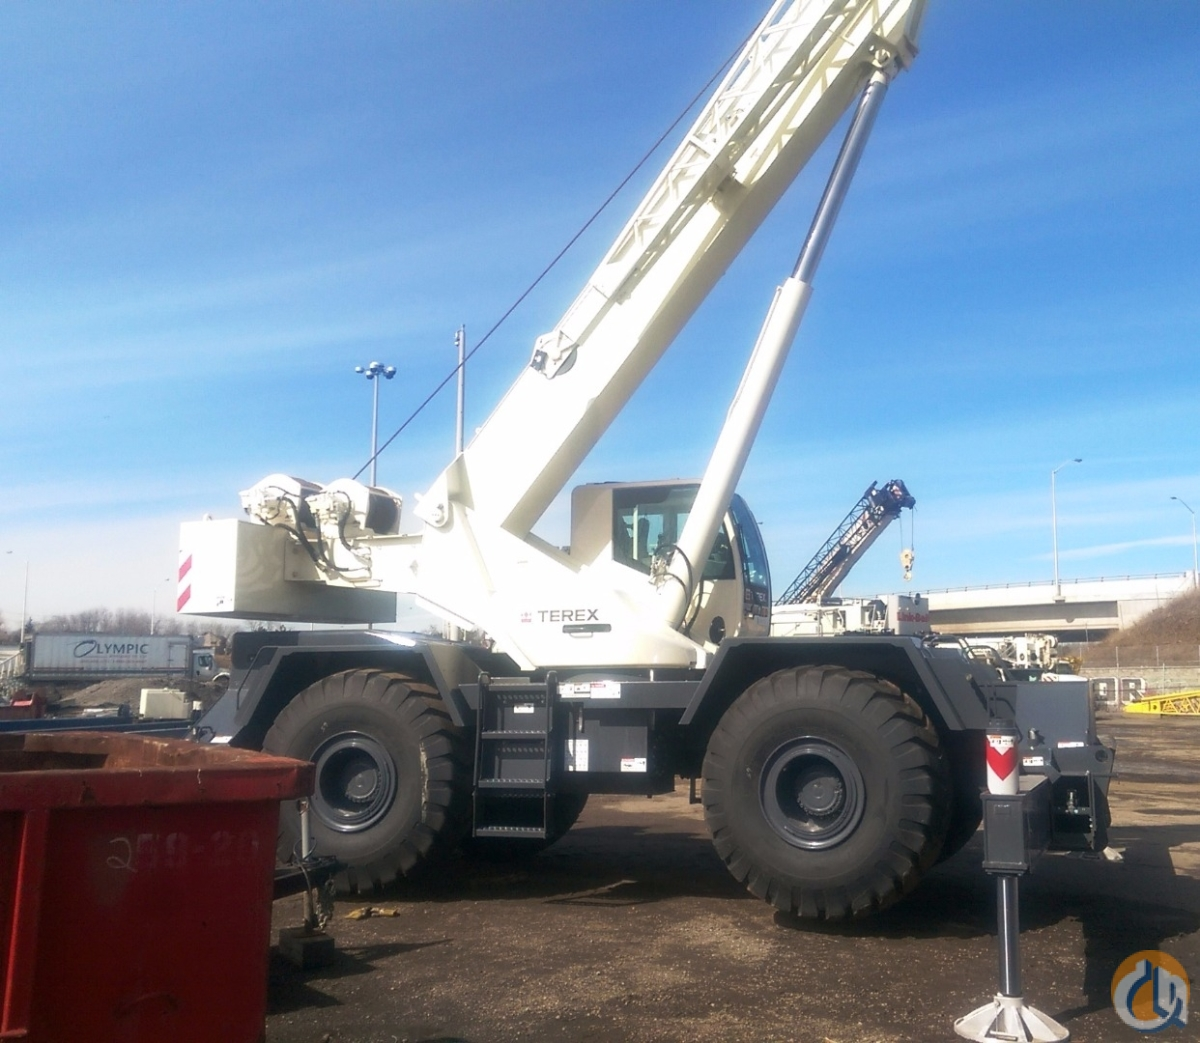 2014 TEREX RT780 Crane for Sale or Rent in Oakville Ontario on CraneNetwork.com